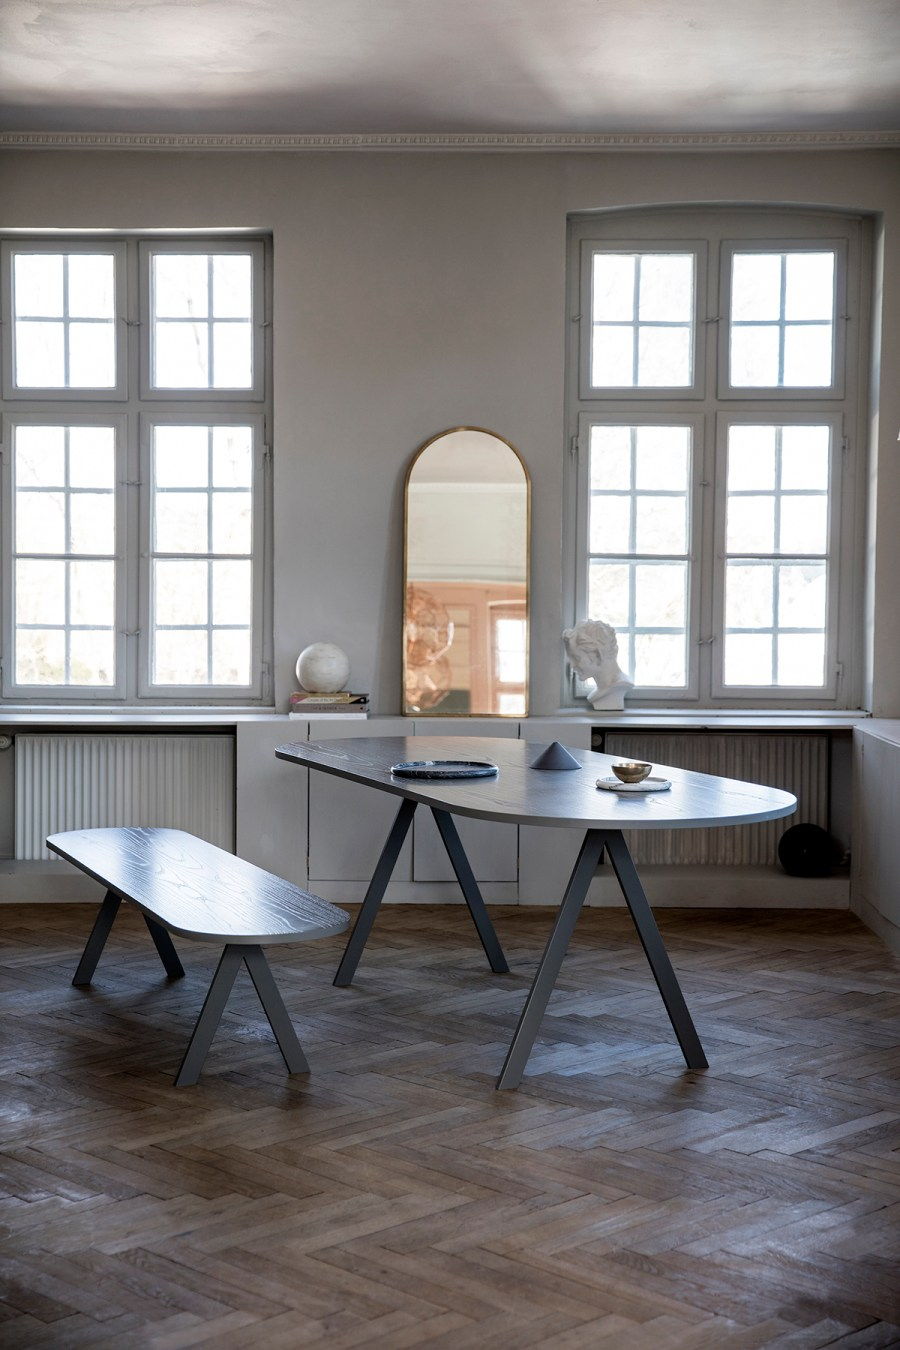 Fragments furniture collection by Friends & Founders